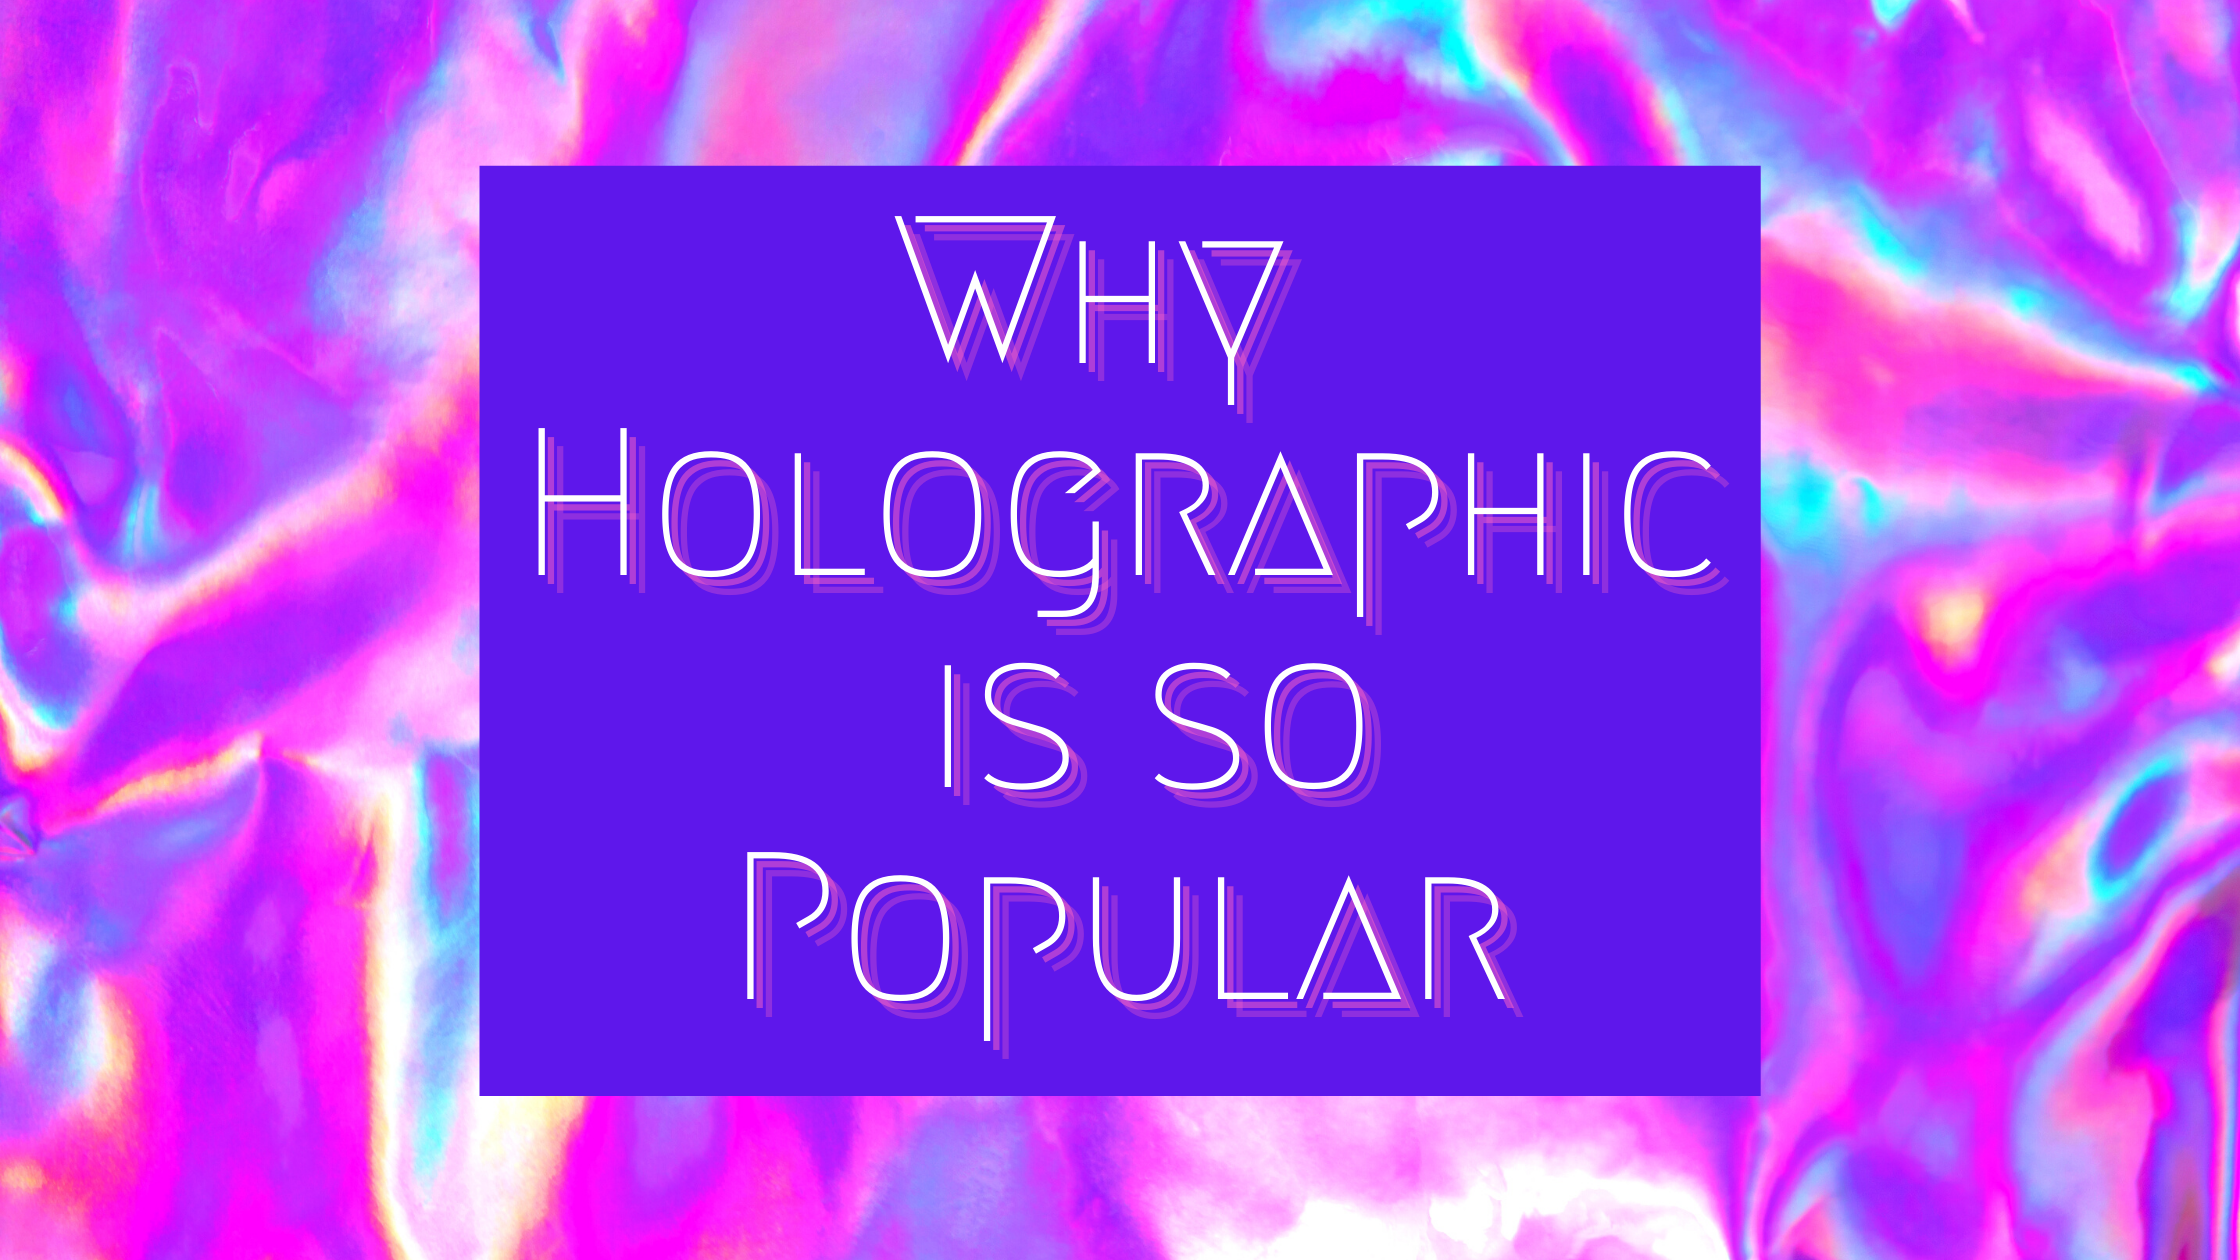 Why Holographic is the Color of 2020: Why Holographic is So Popular